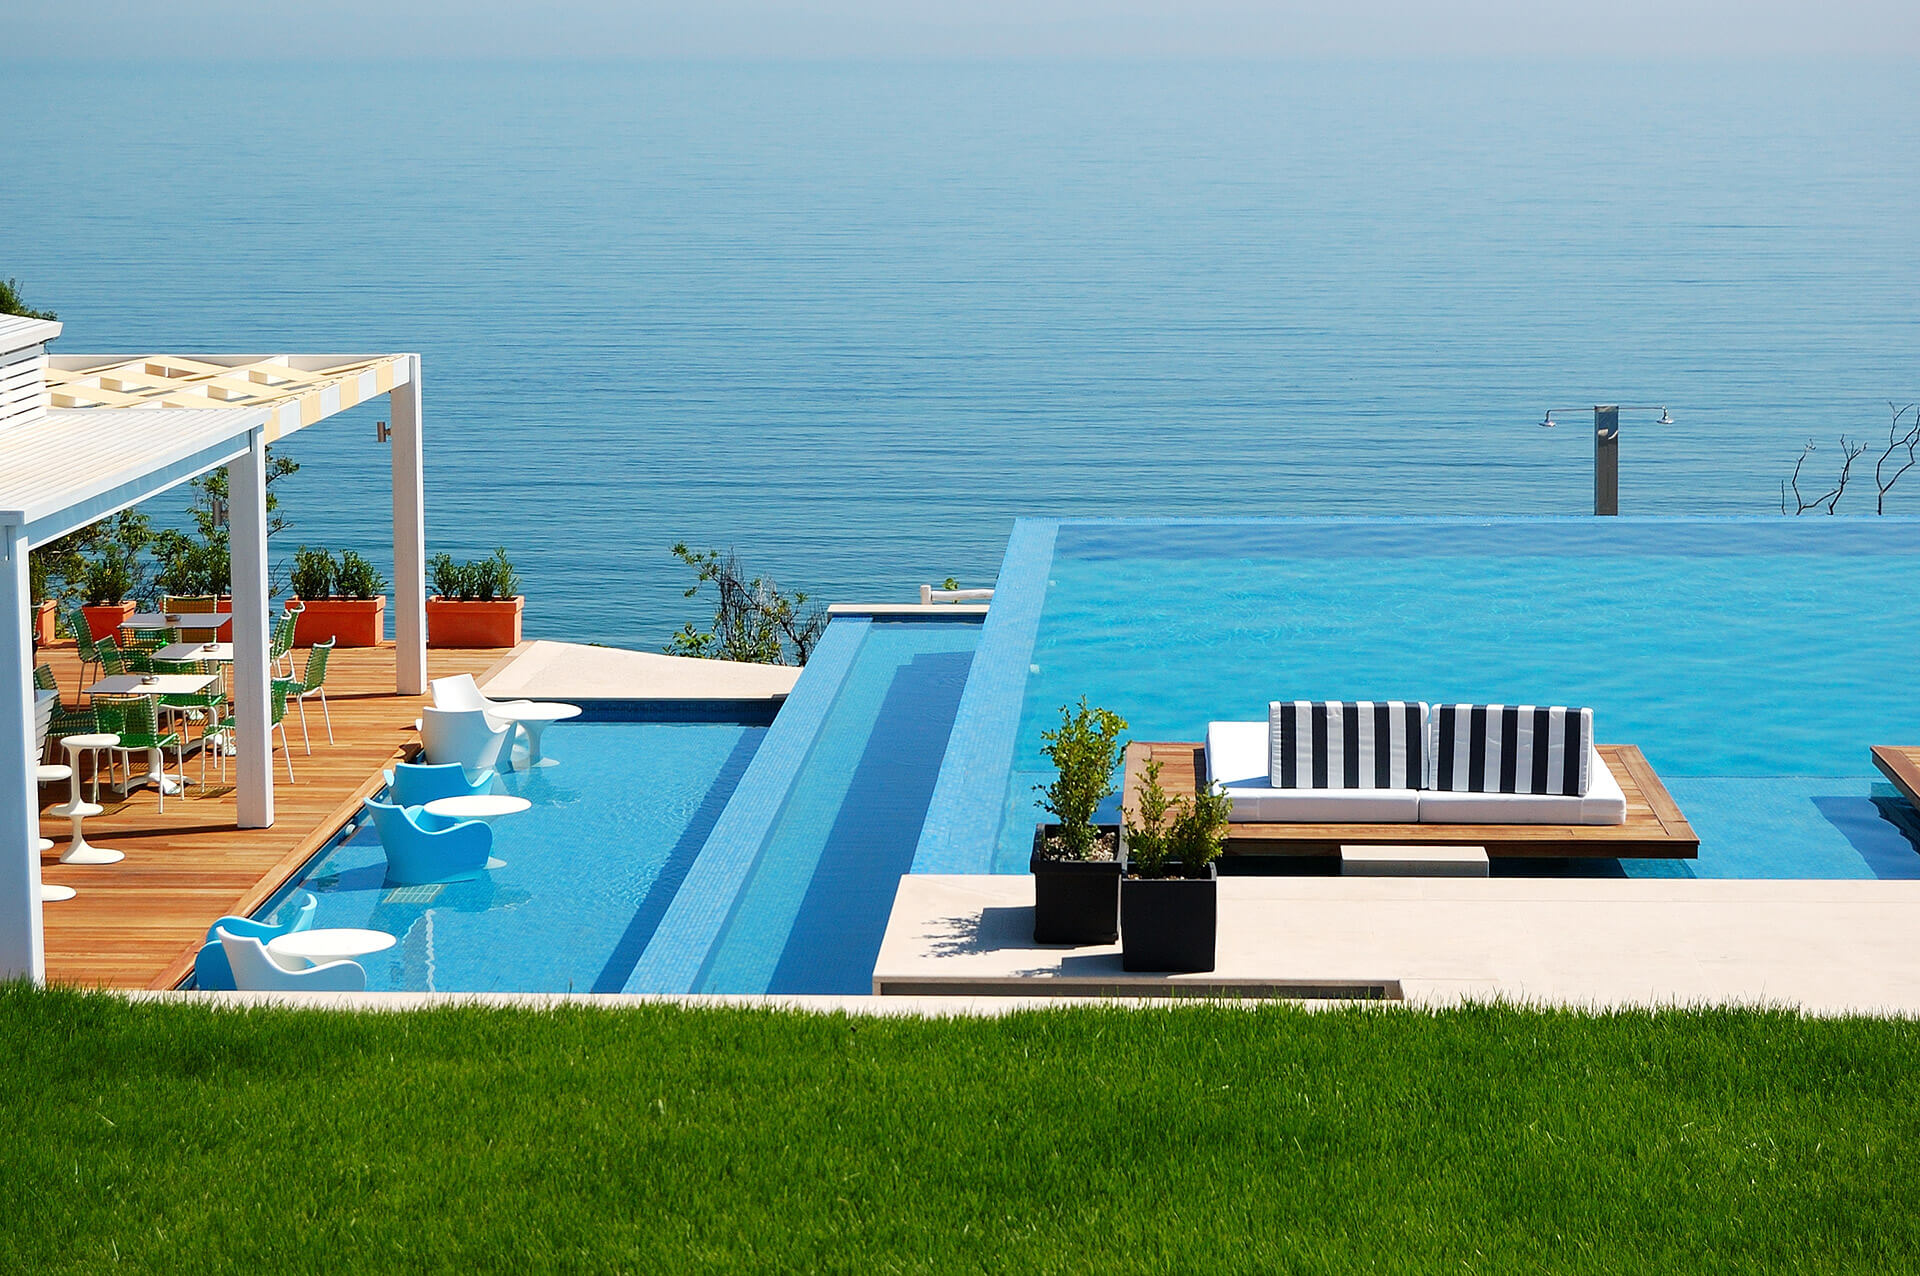 Staggered Swimming Pool with Infinity Edge Design